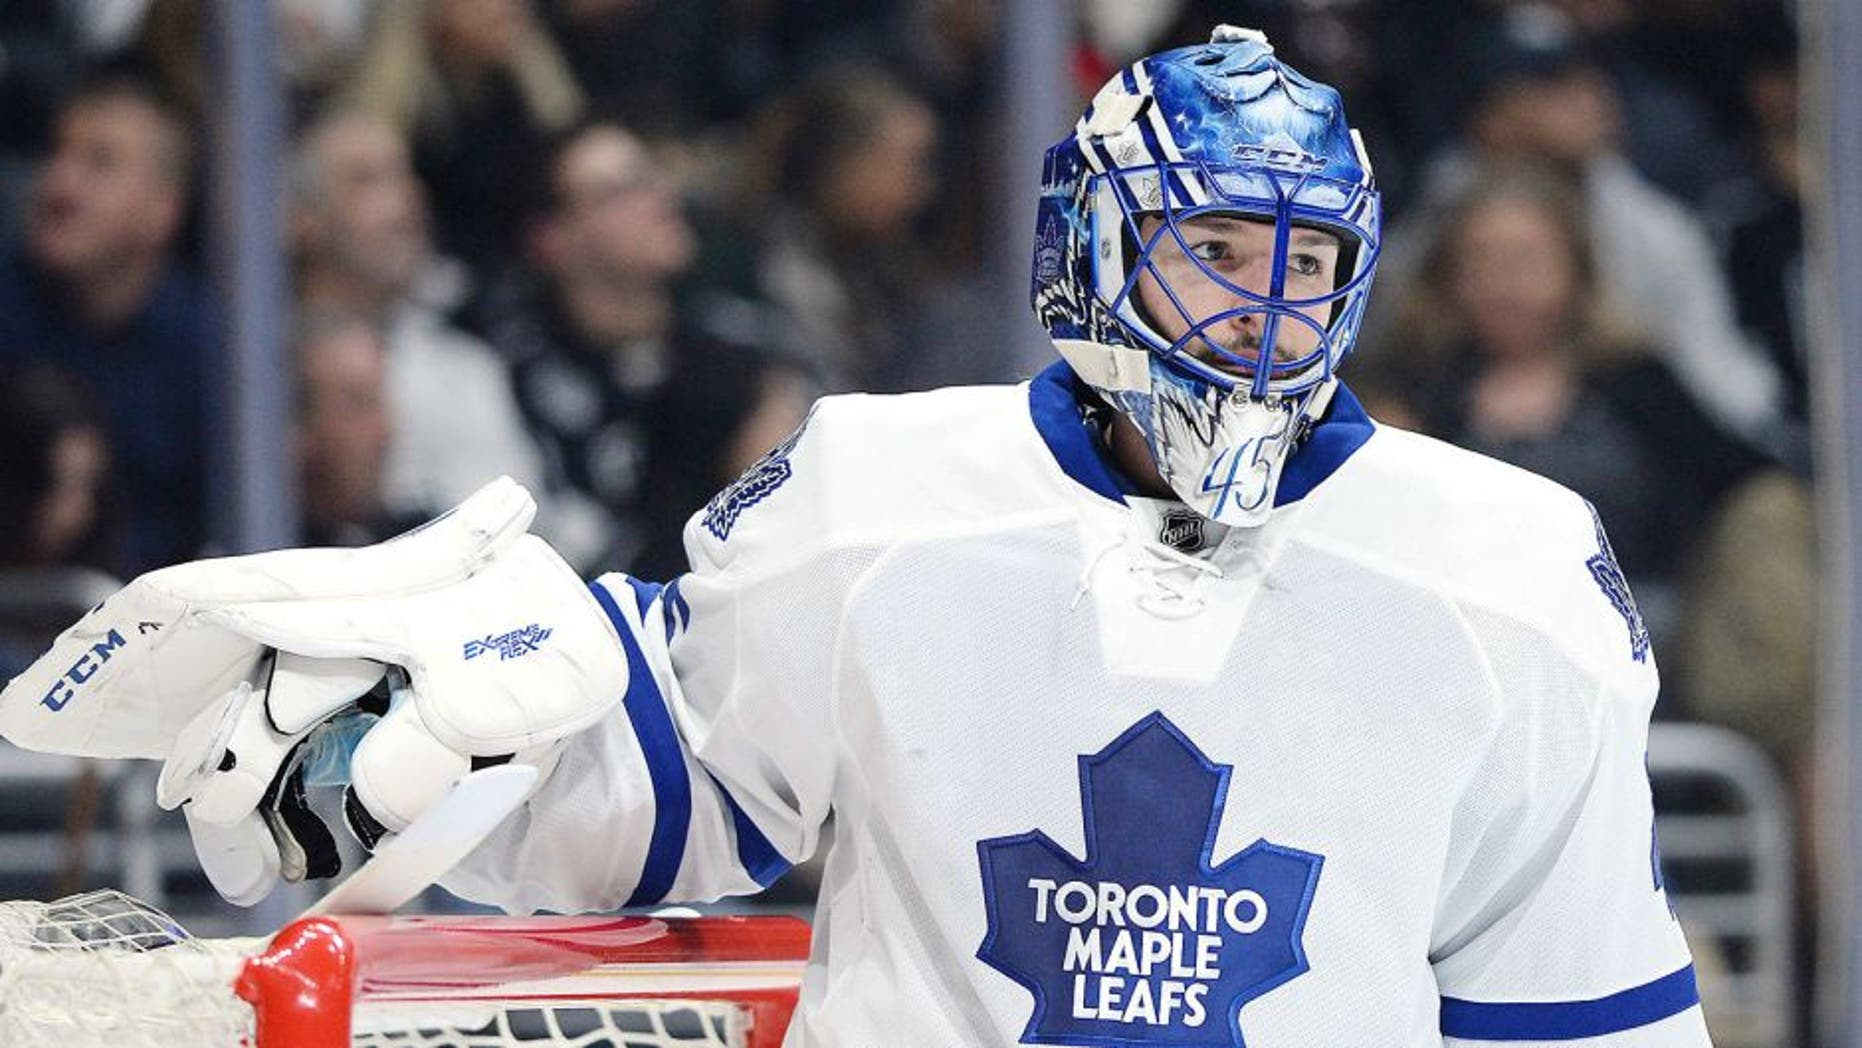 Jan 12, 2015; Los Angeles, CA, USA; Toronto Maple Leafs goalie Jonathan Bernier (45) looks on during the game against the Los Angeles Kings at Staples Center. Kings won 2-0. Mandatory Credit: Jayne Kamin-Oncea-USA TODAY Sports